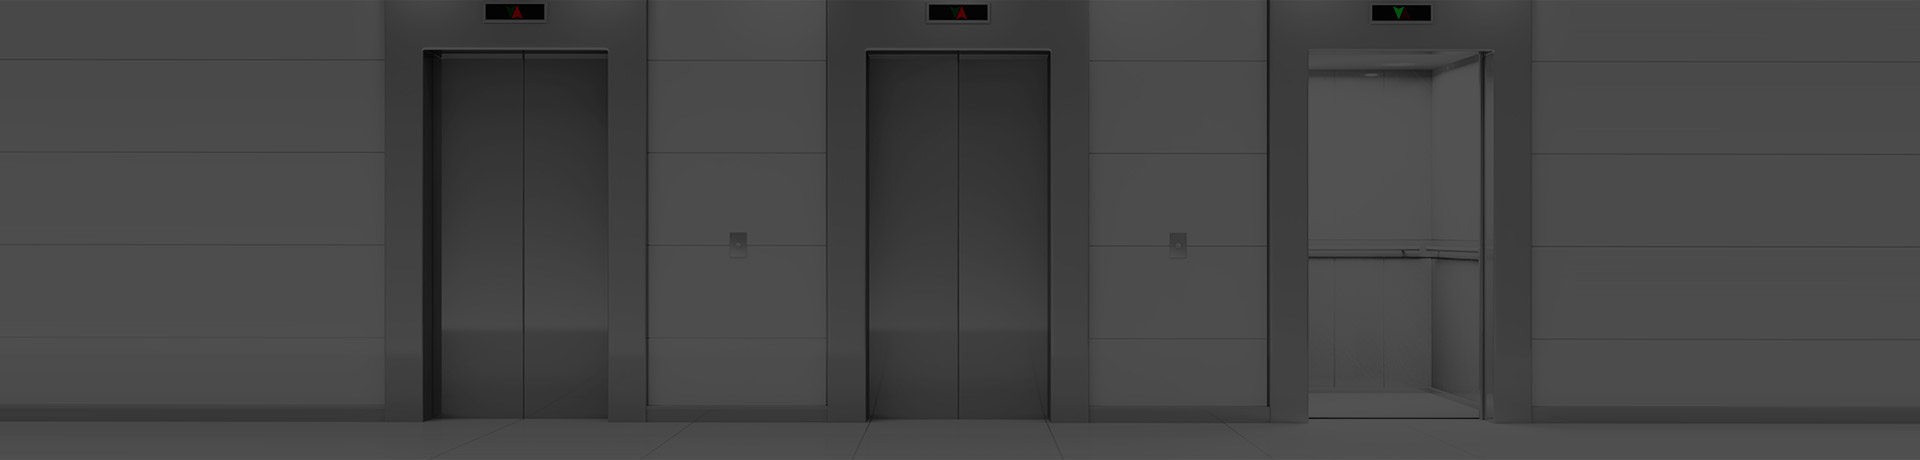 Lift interiors' modern protection systems